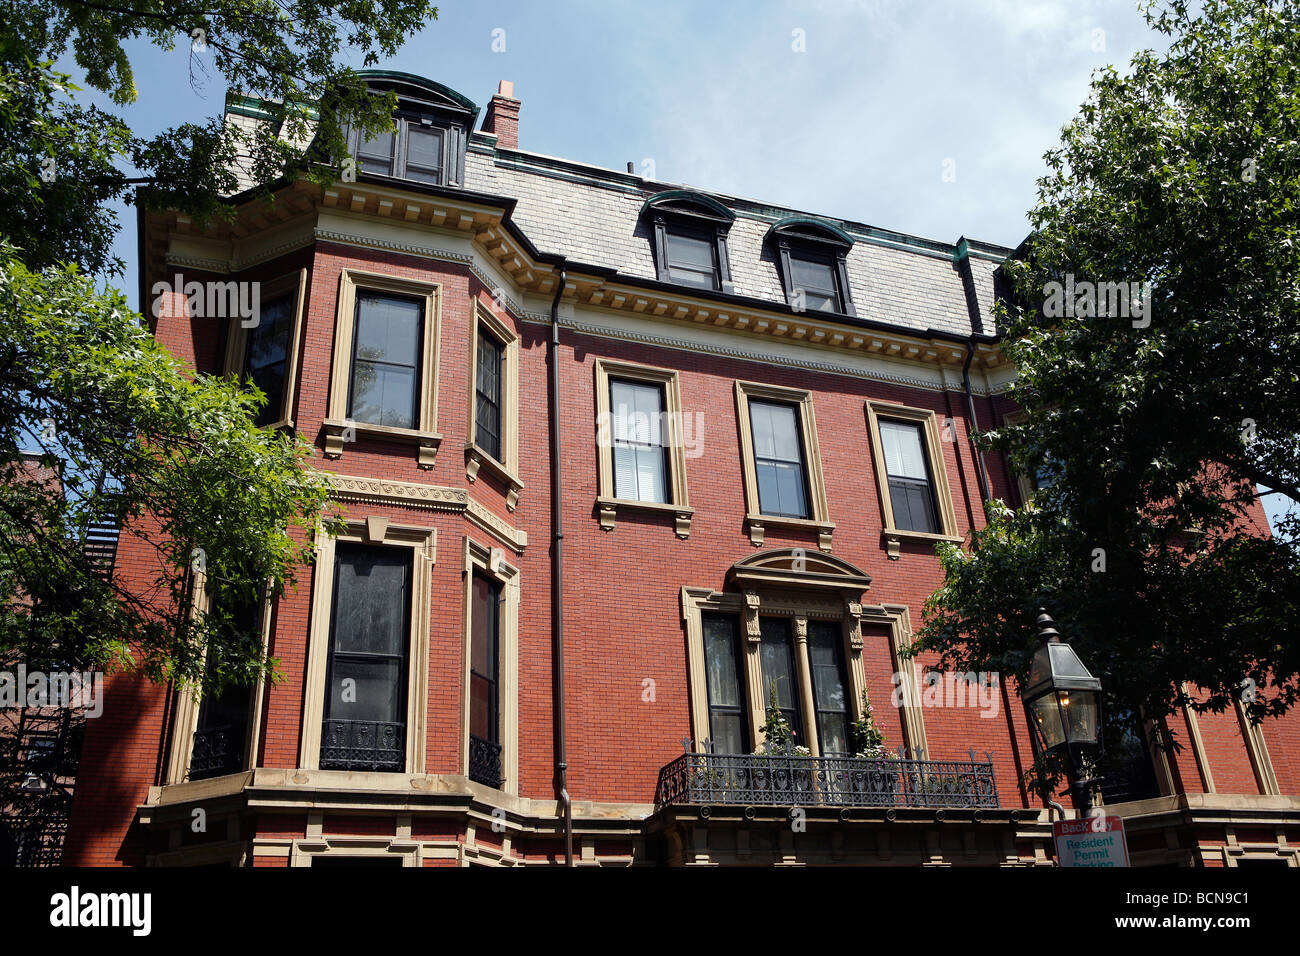 Brick Apartment Building, Back Bay, Boston, Massachusetts   Stock Image Part 34